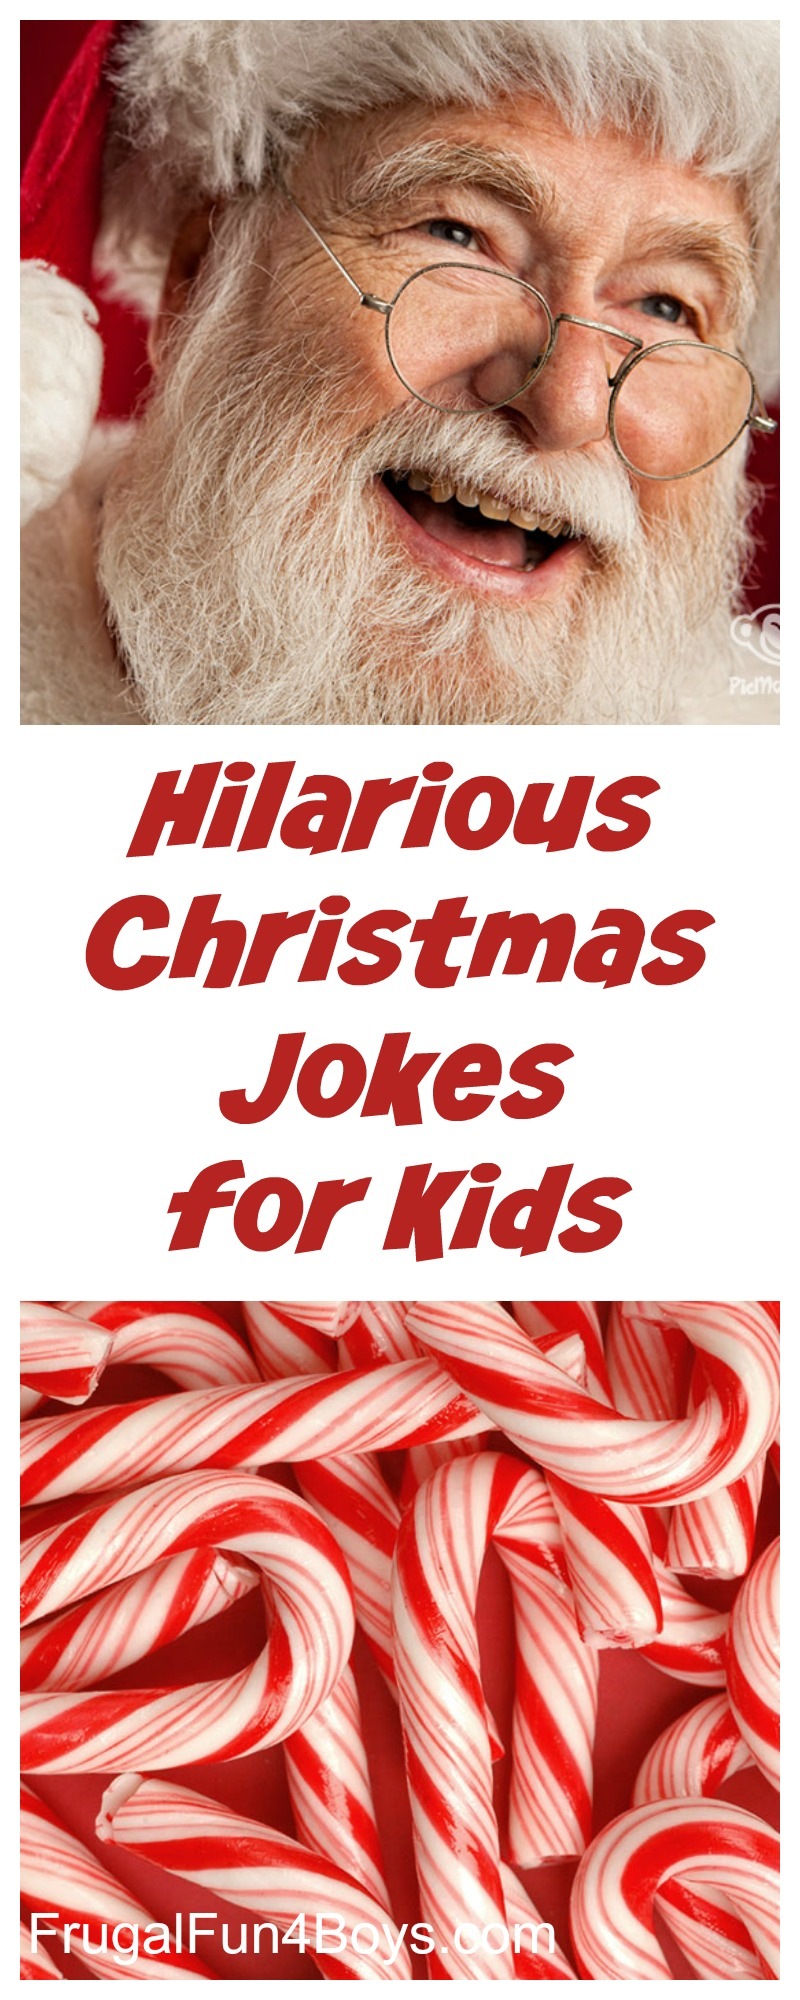 Christmas Jokes Kids.Hilarious Christmas Jokes For Kids Frugal Fun For Boys And